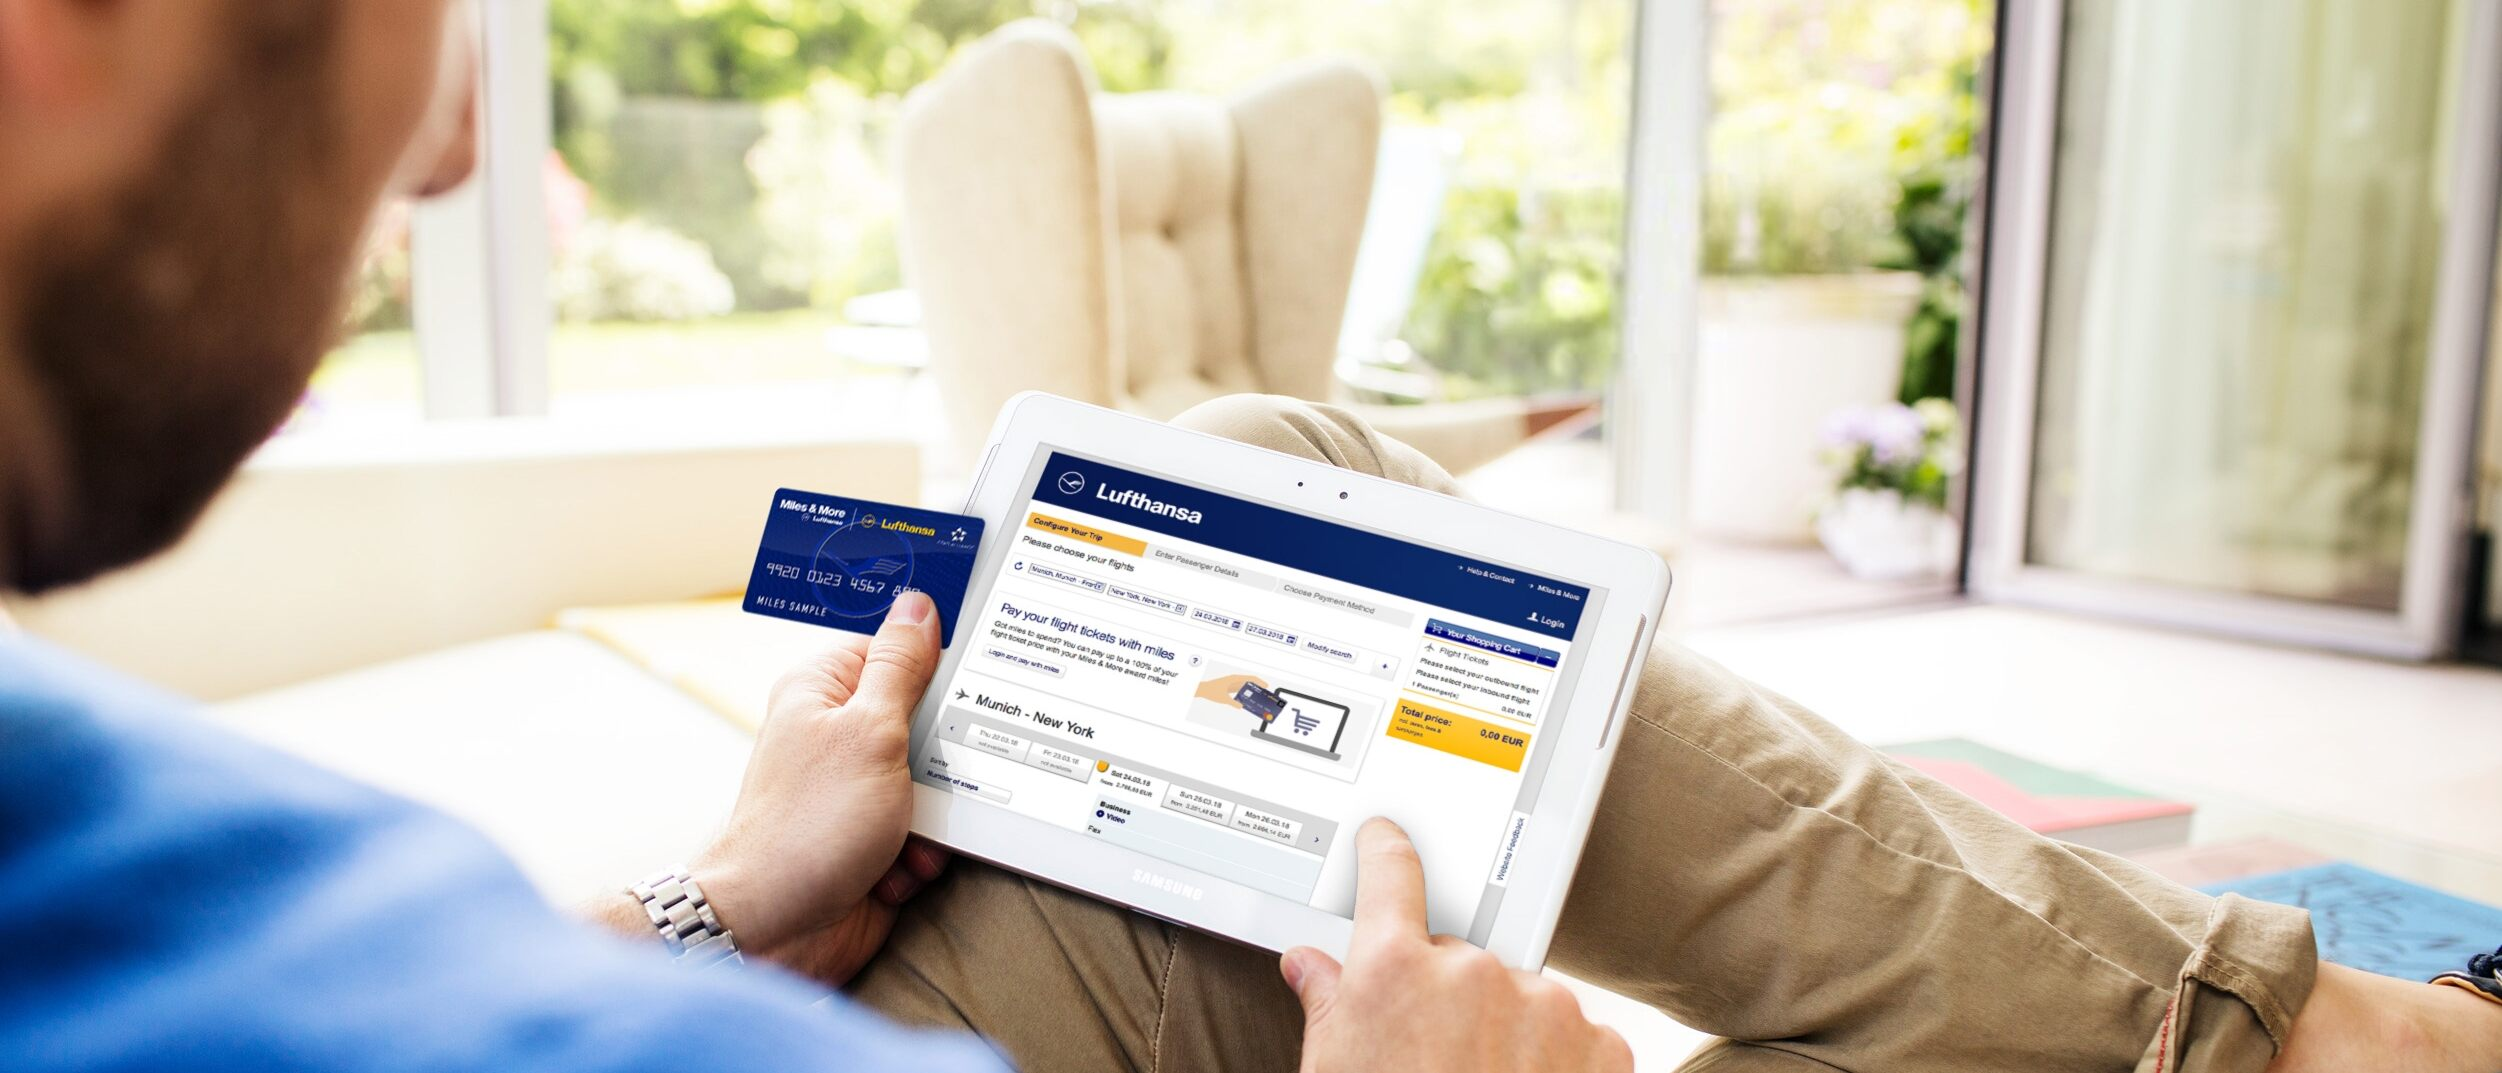 Miles And More Digital Service Card Lufthansa Great Value Flights Flight Offers Book Great Value